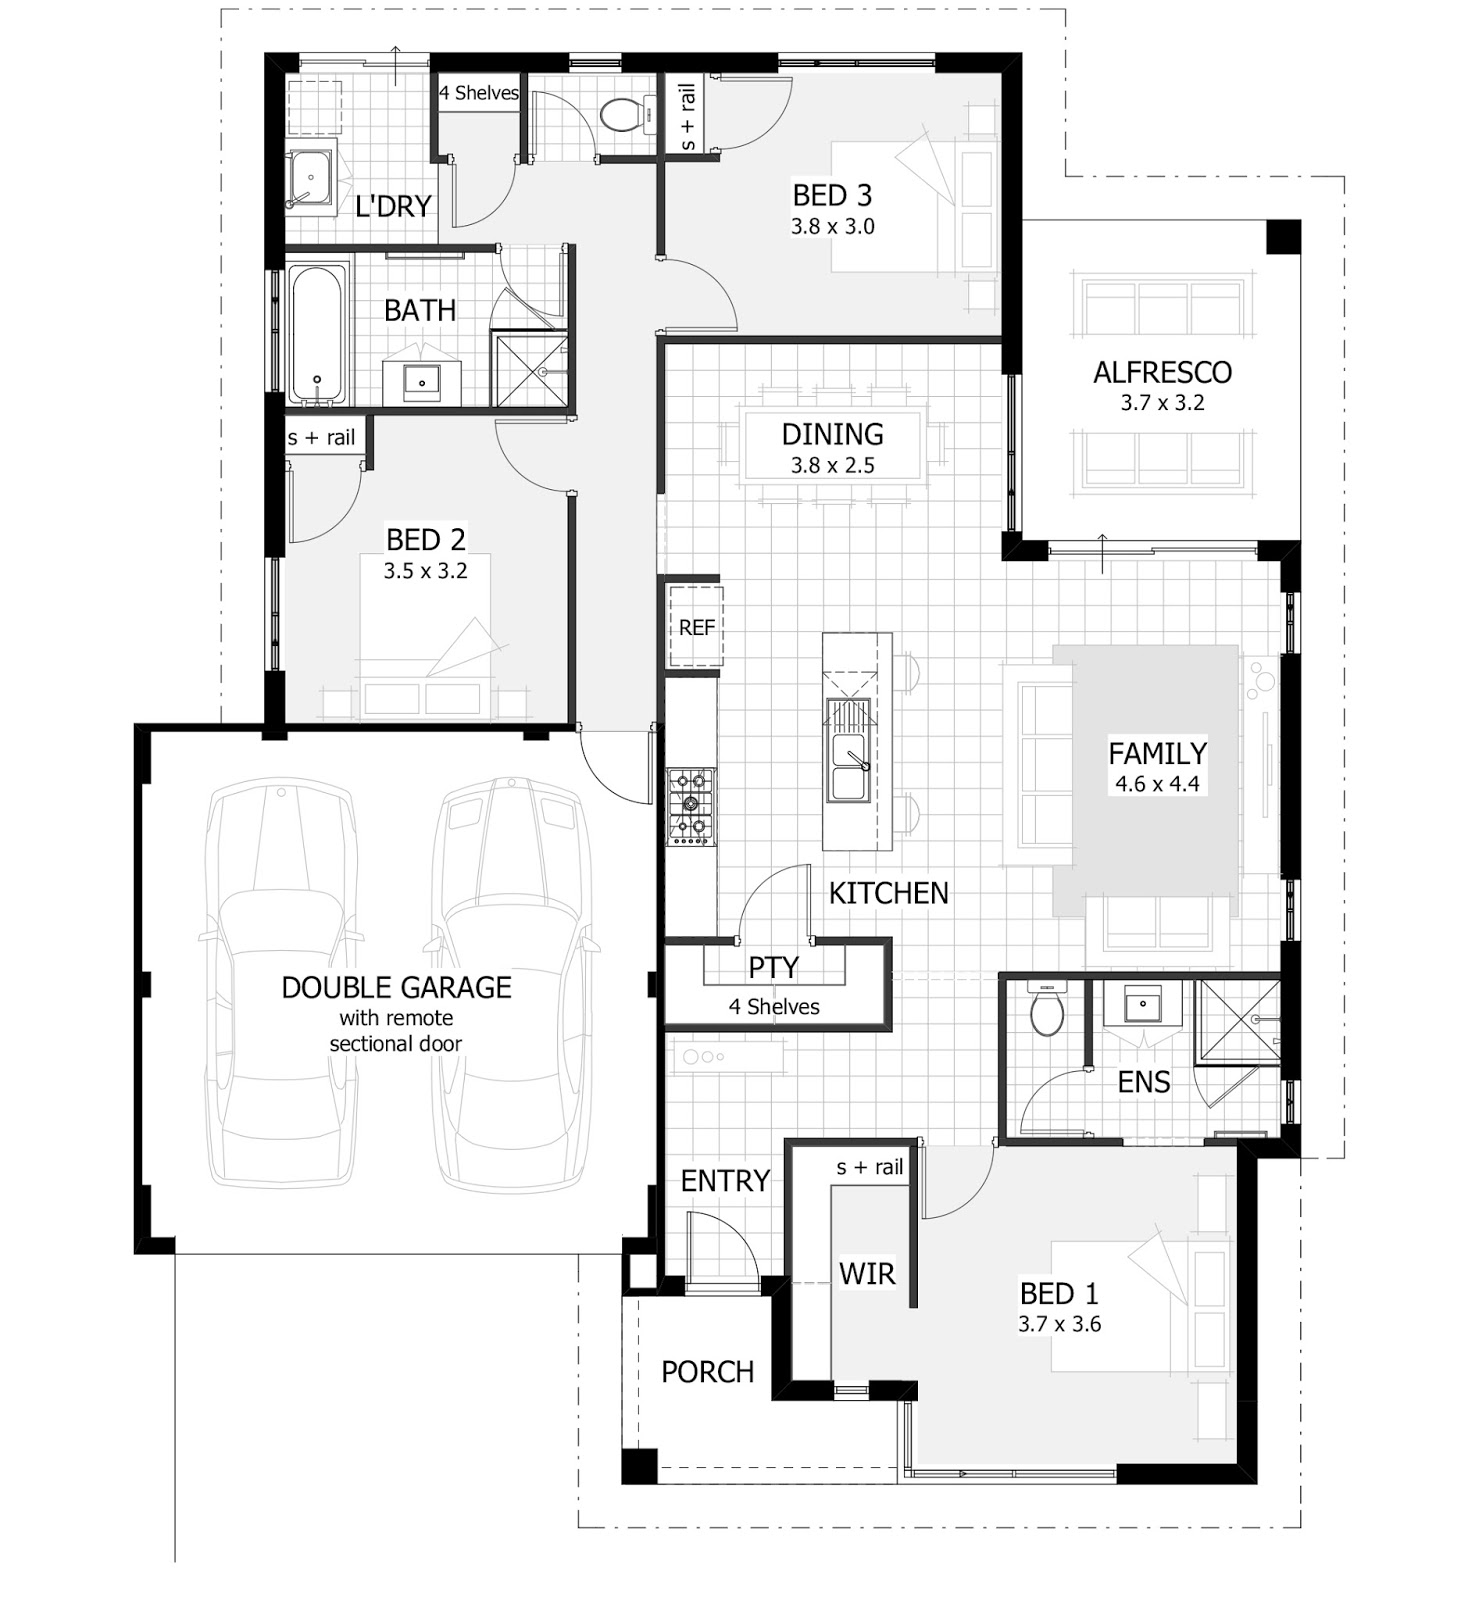 Luxury holiday small villas floor plans with 3 to 4 bedrooms and 2 baths Home plan drawing